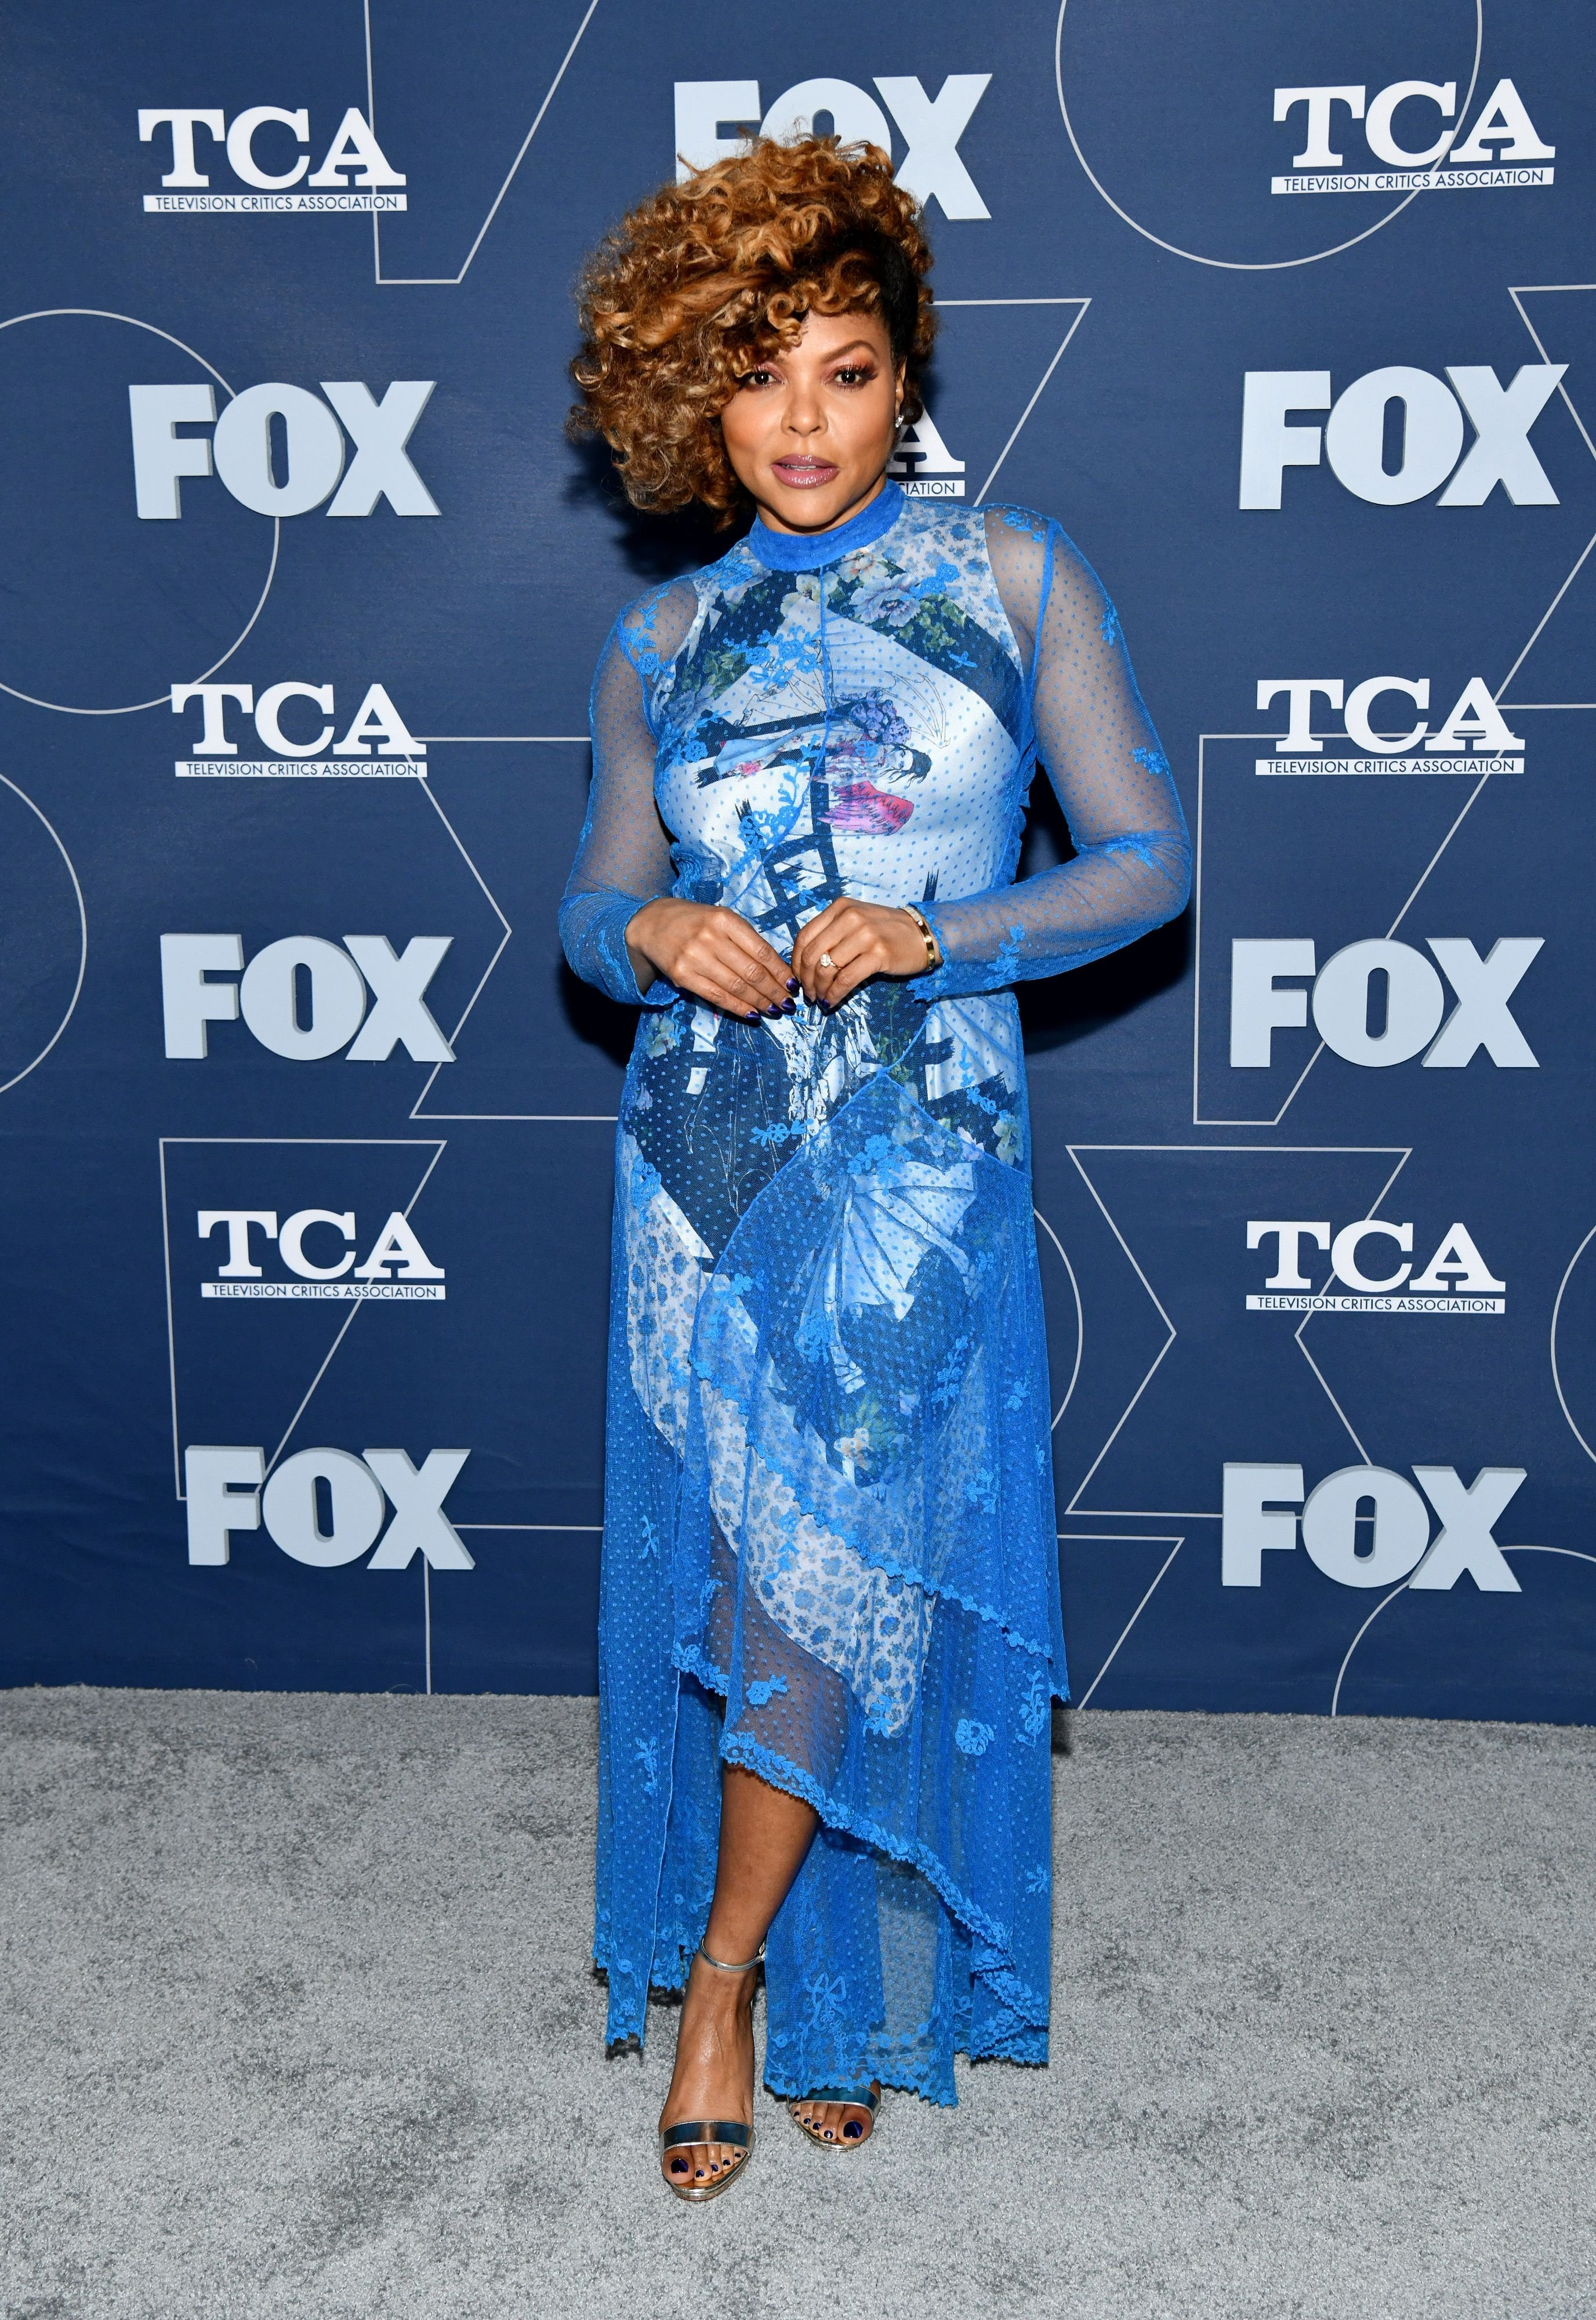 Actress Taraji P. Henson attends the Fox Winter TCA All Star Party at The Langham Huntington on January 7, 2020 in Pasadena, California.   Source: Getty Images